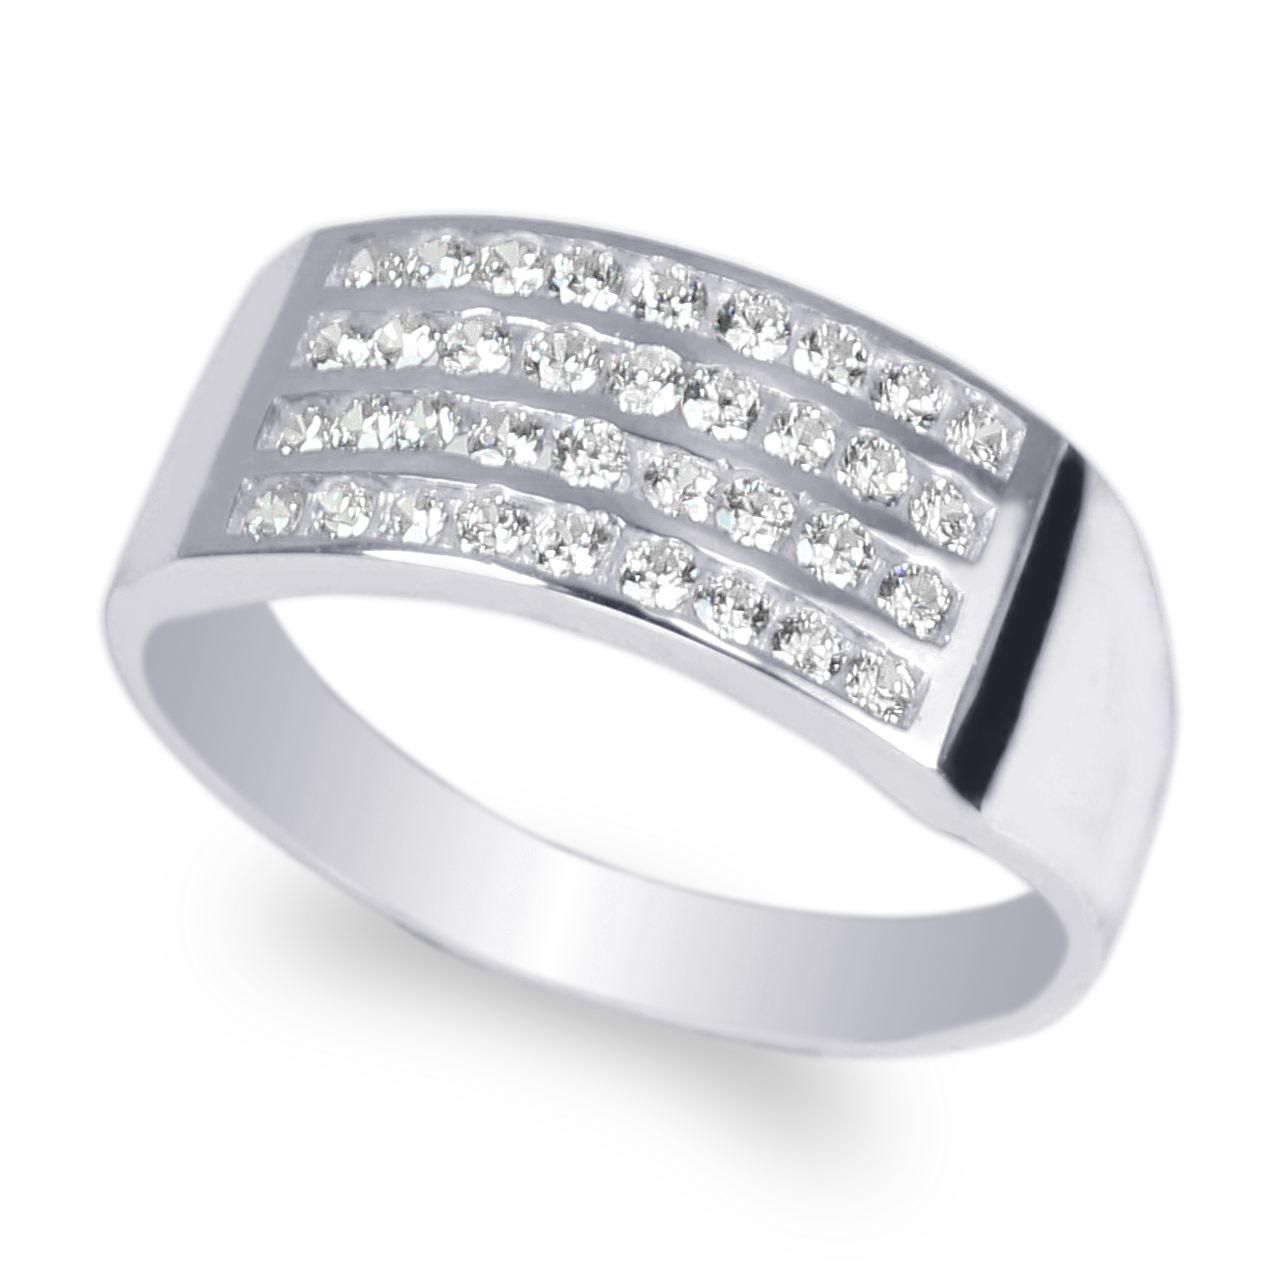 JamesJenny Mens 10K White Gold Double Row Channel Band Ring Size 7-12